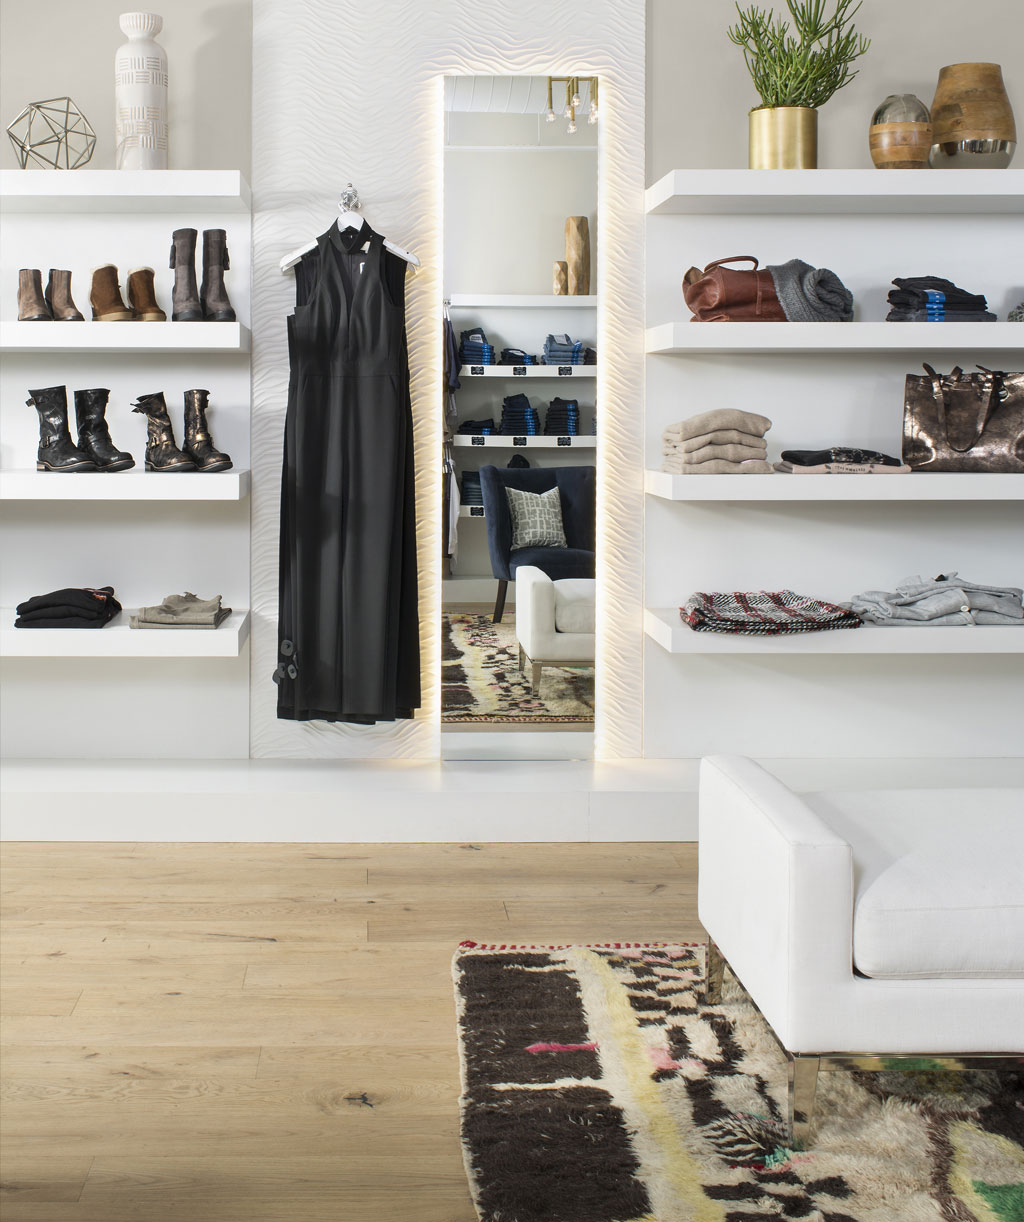 homes archive ajp realty design the 1425 square foot store complements it s contemporary women s clothing and accessories with a clean feminine fun design